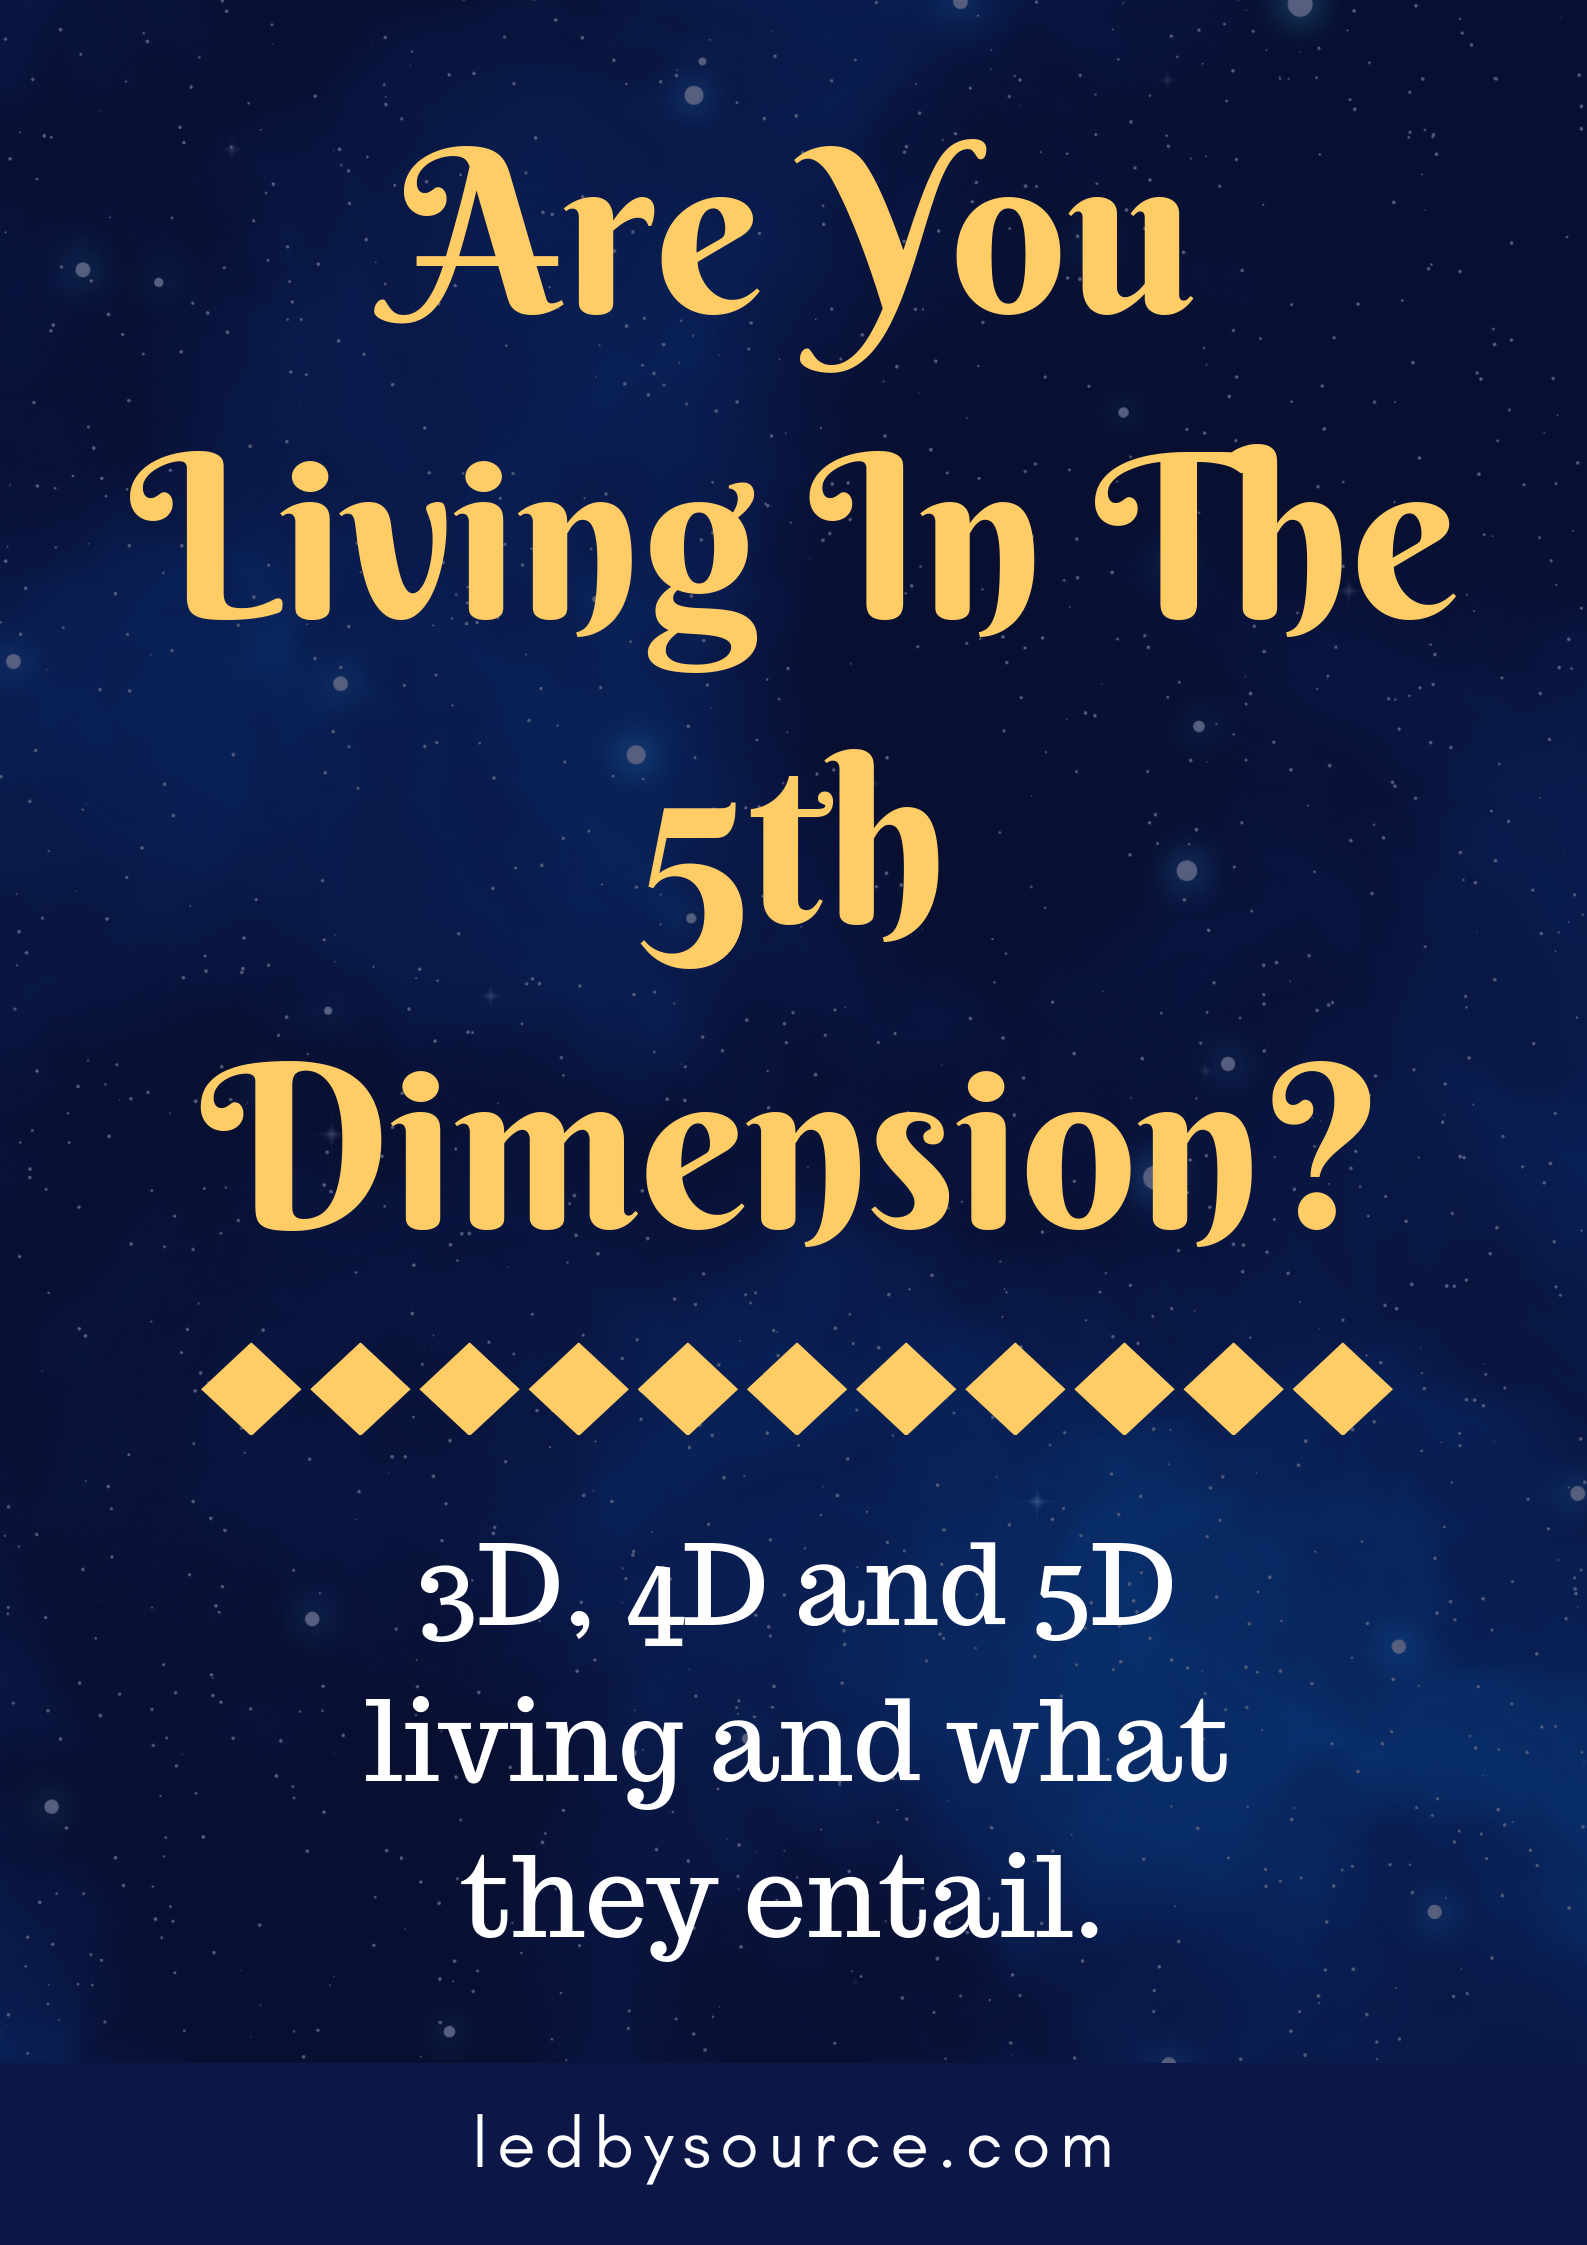 5D Living - Are You Living In The 5th Dimension?